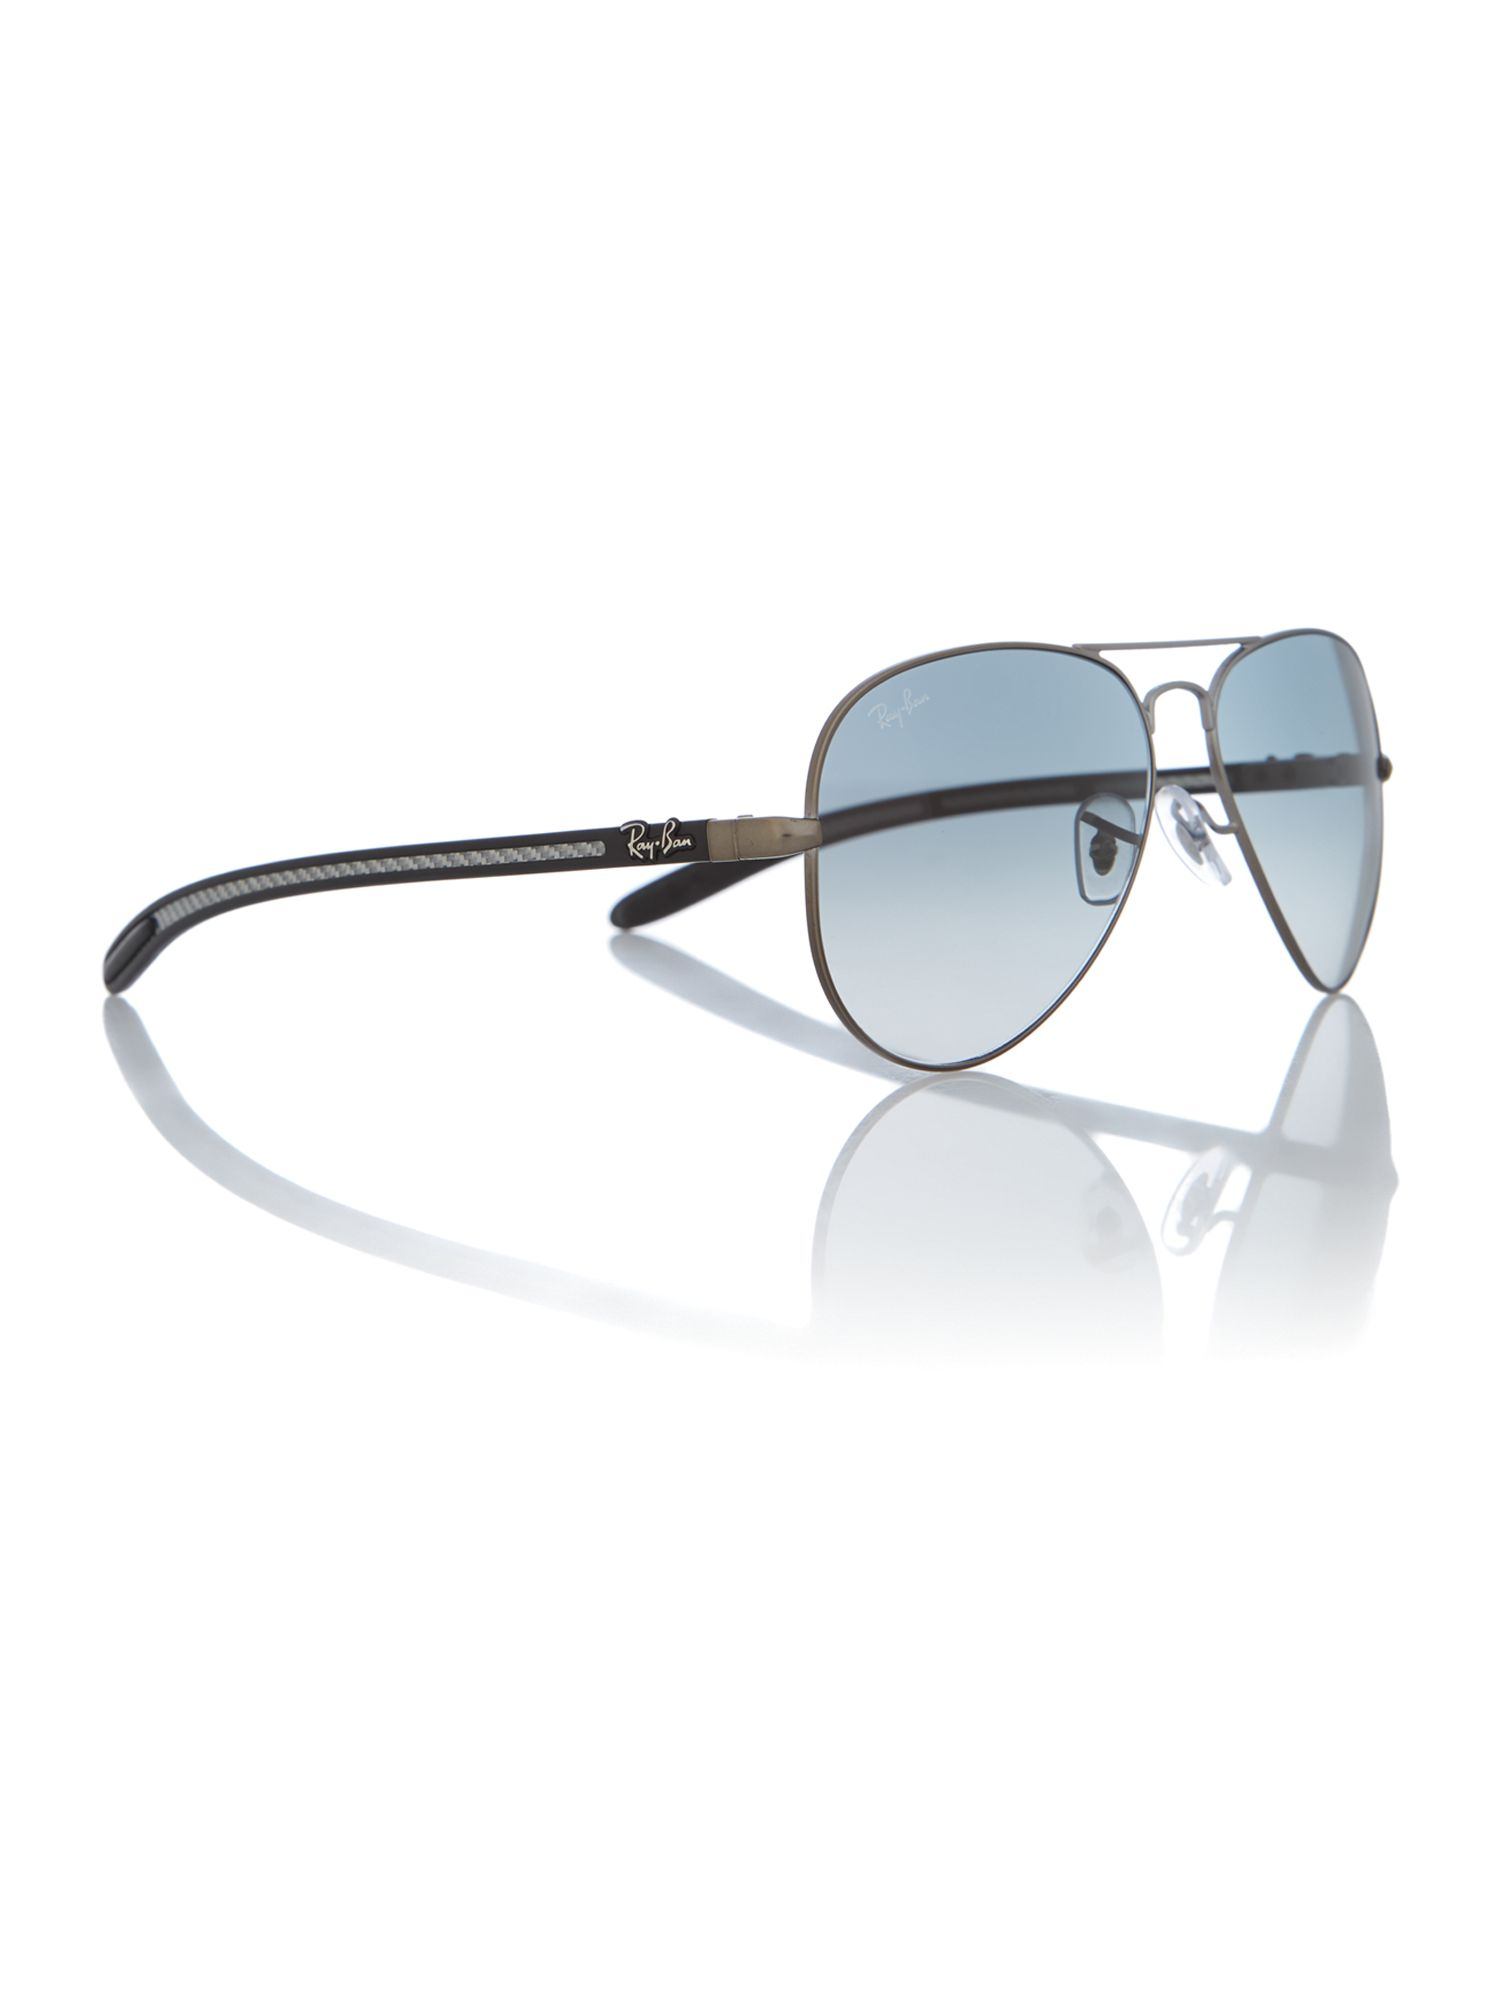 Rb8307 men`s pilot sunglasses